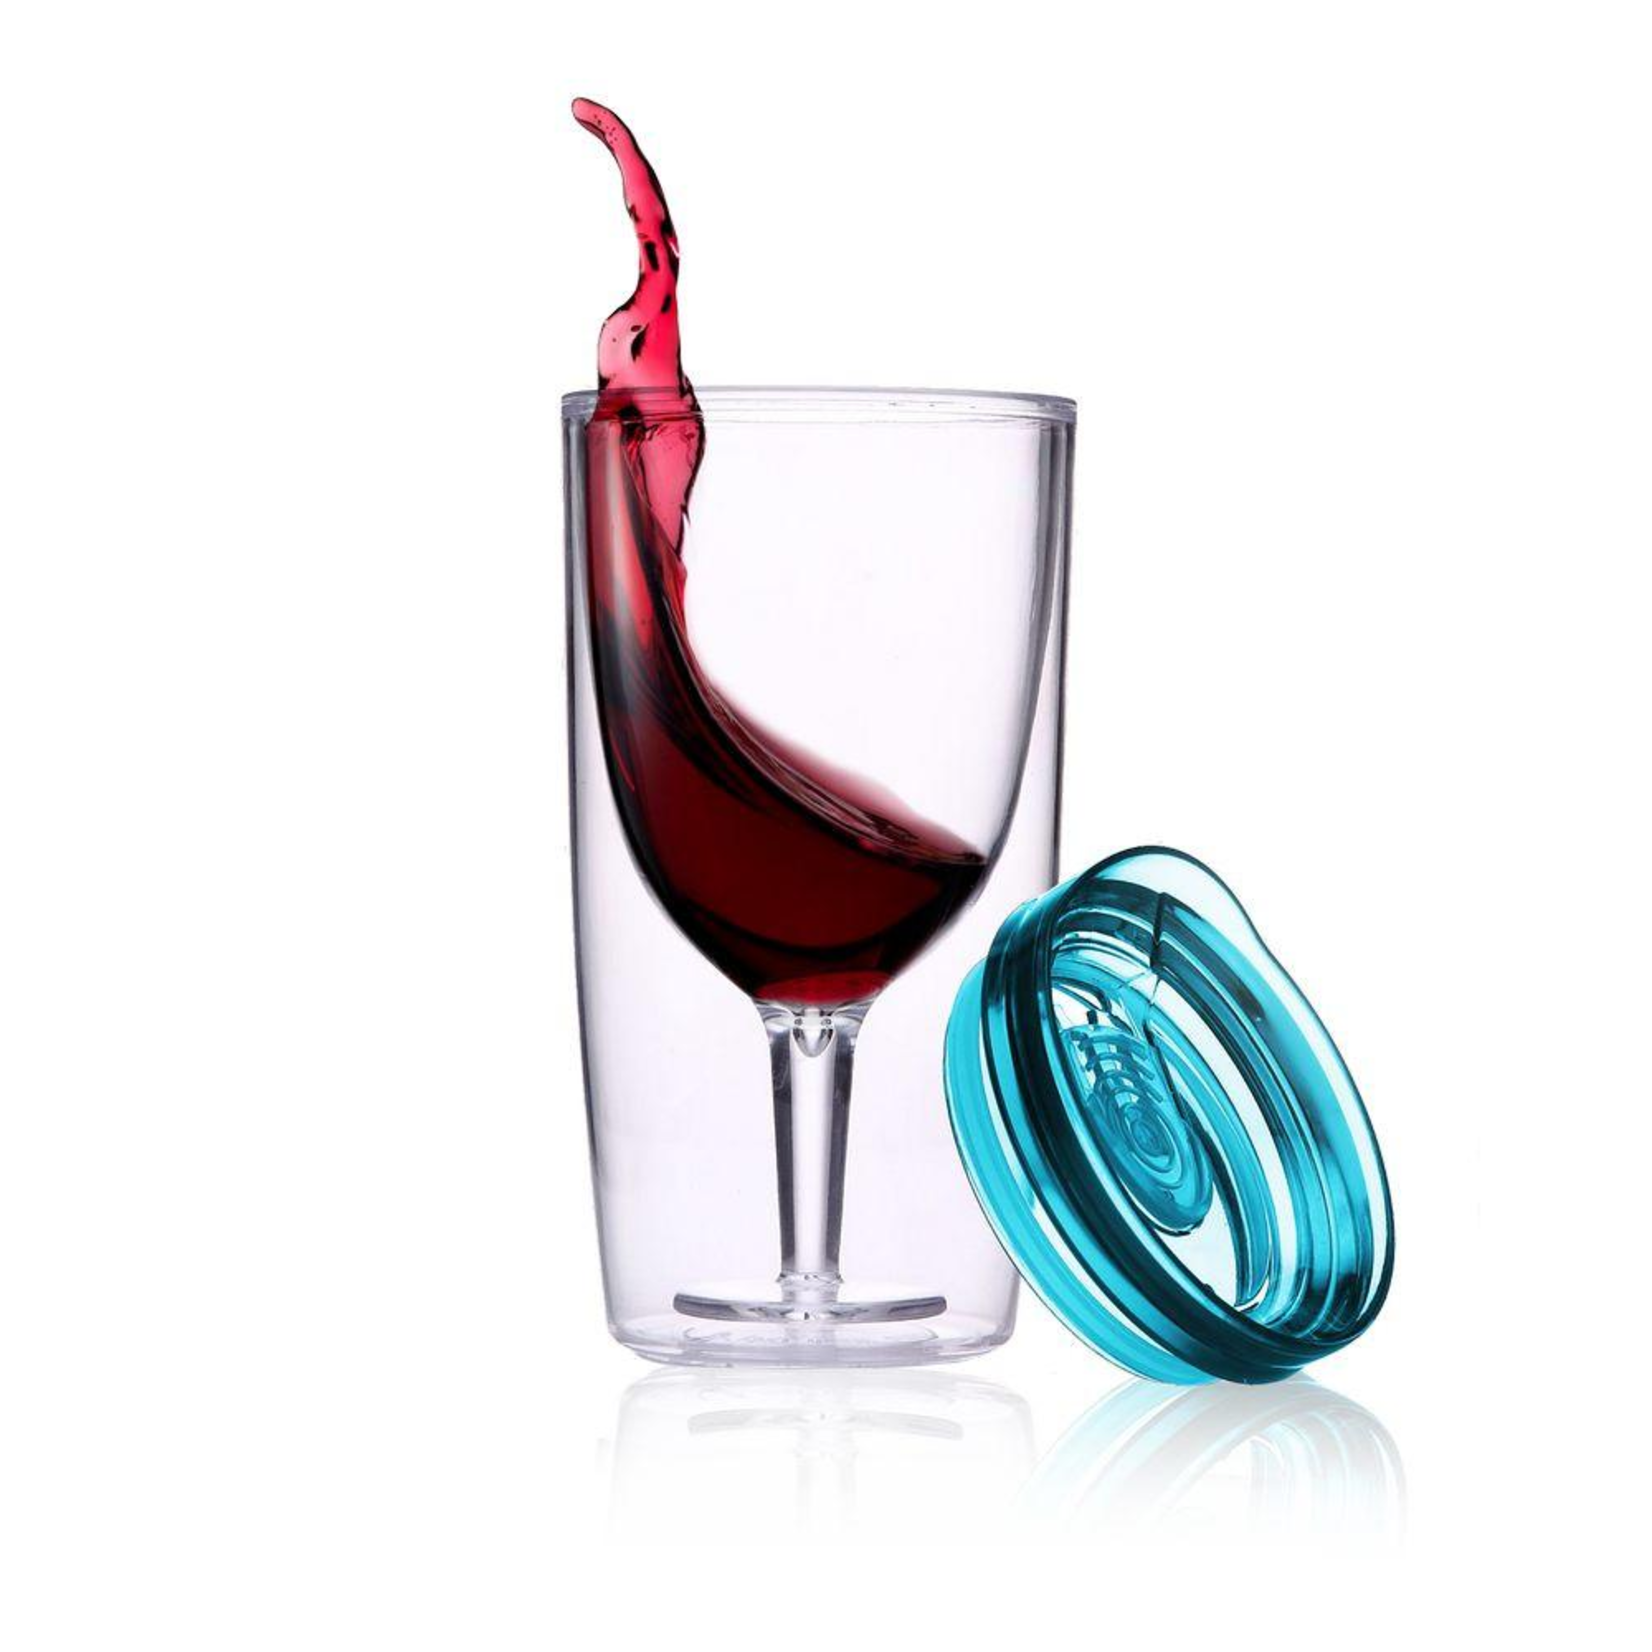 Travino TraVino Spillproof Wine Sippy Cup